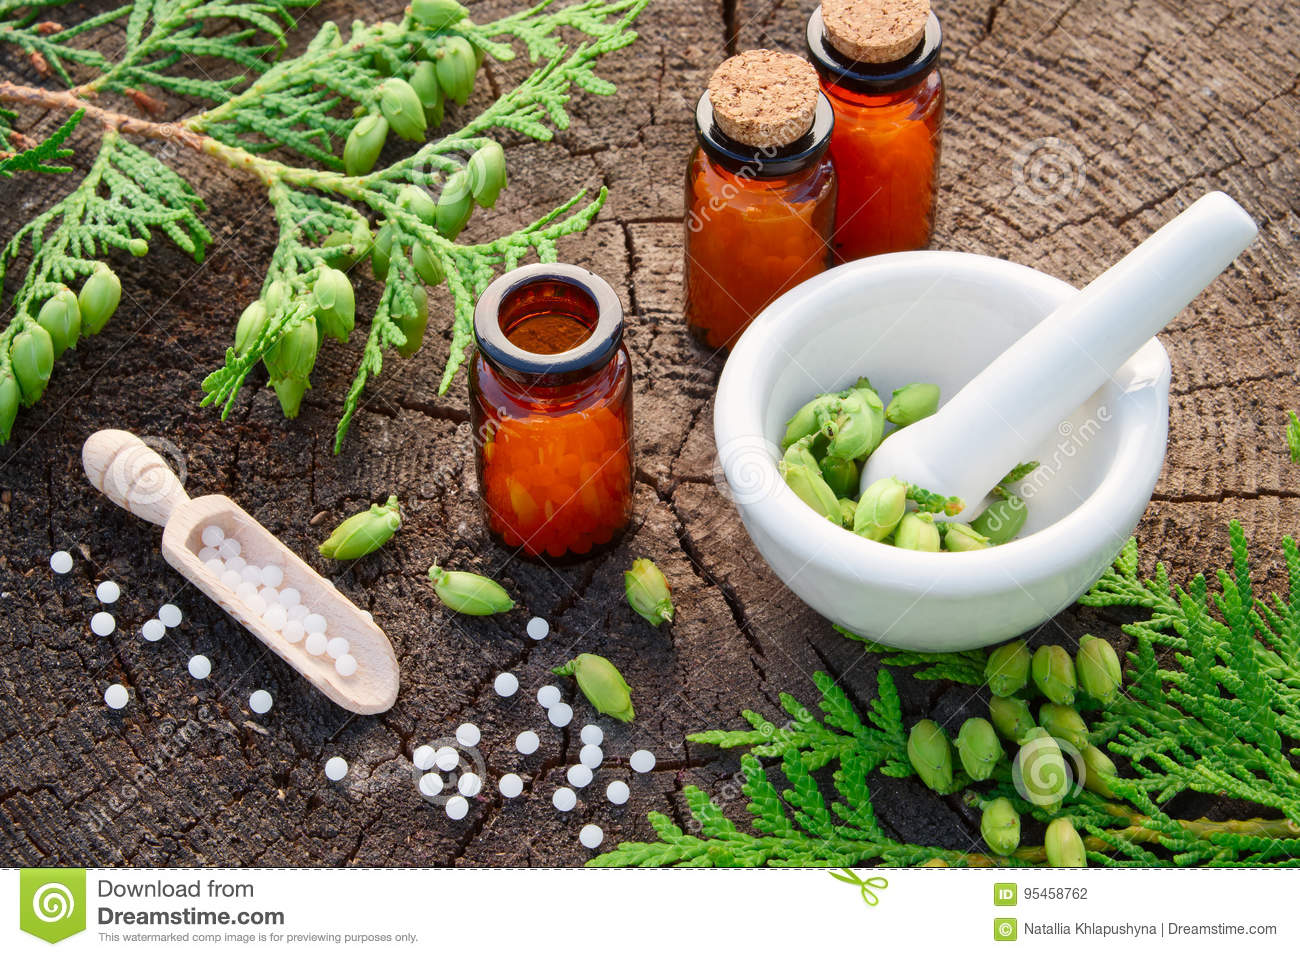 Homeopathic Globules, Thuja Occidentalis Drugs, Mortar And